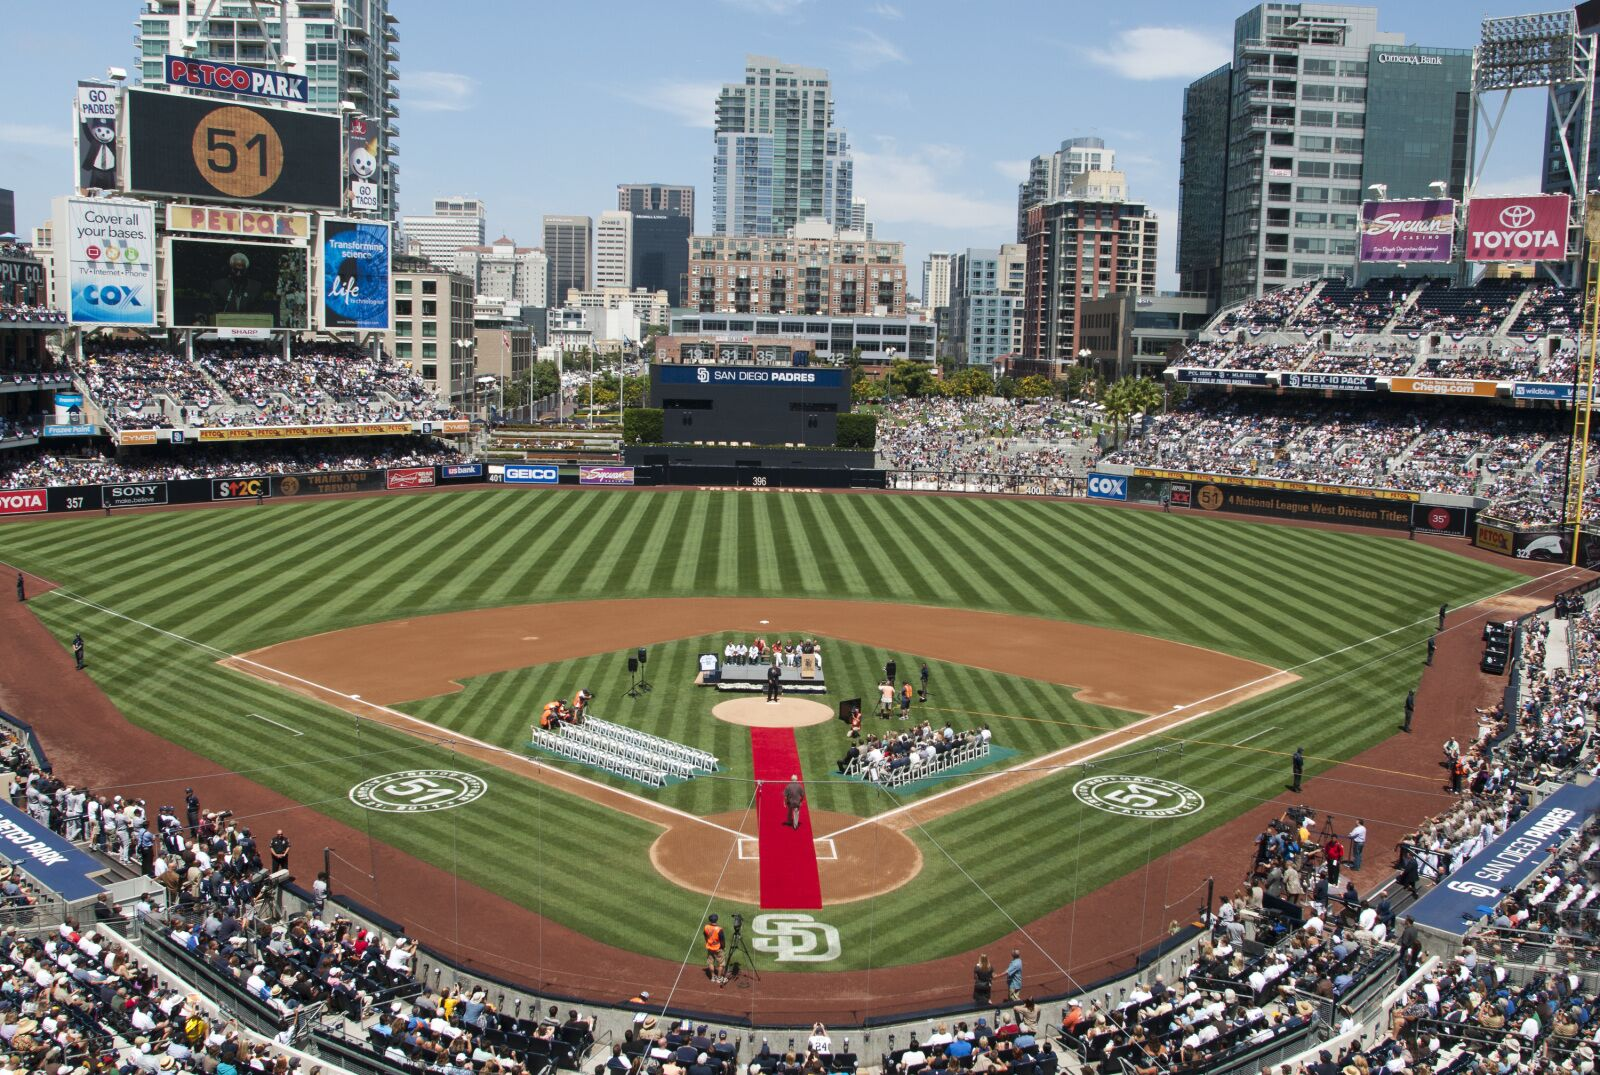 San Diego Padres Quick Hits: Trevor Hoffman and Don Welke Honored